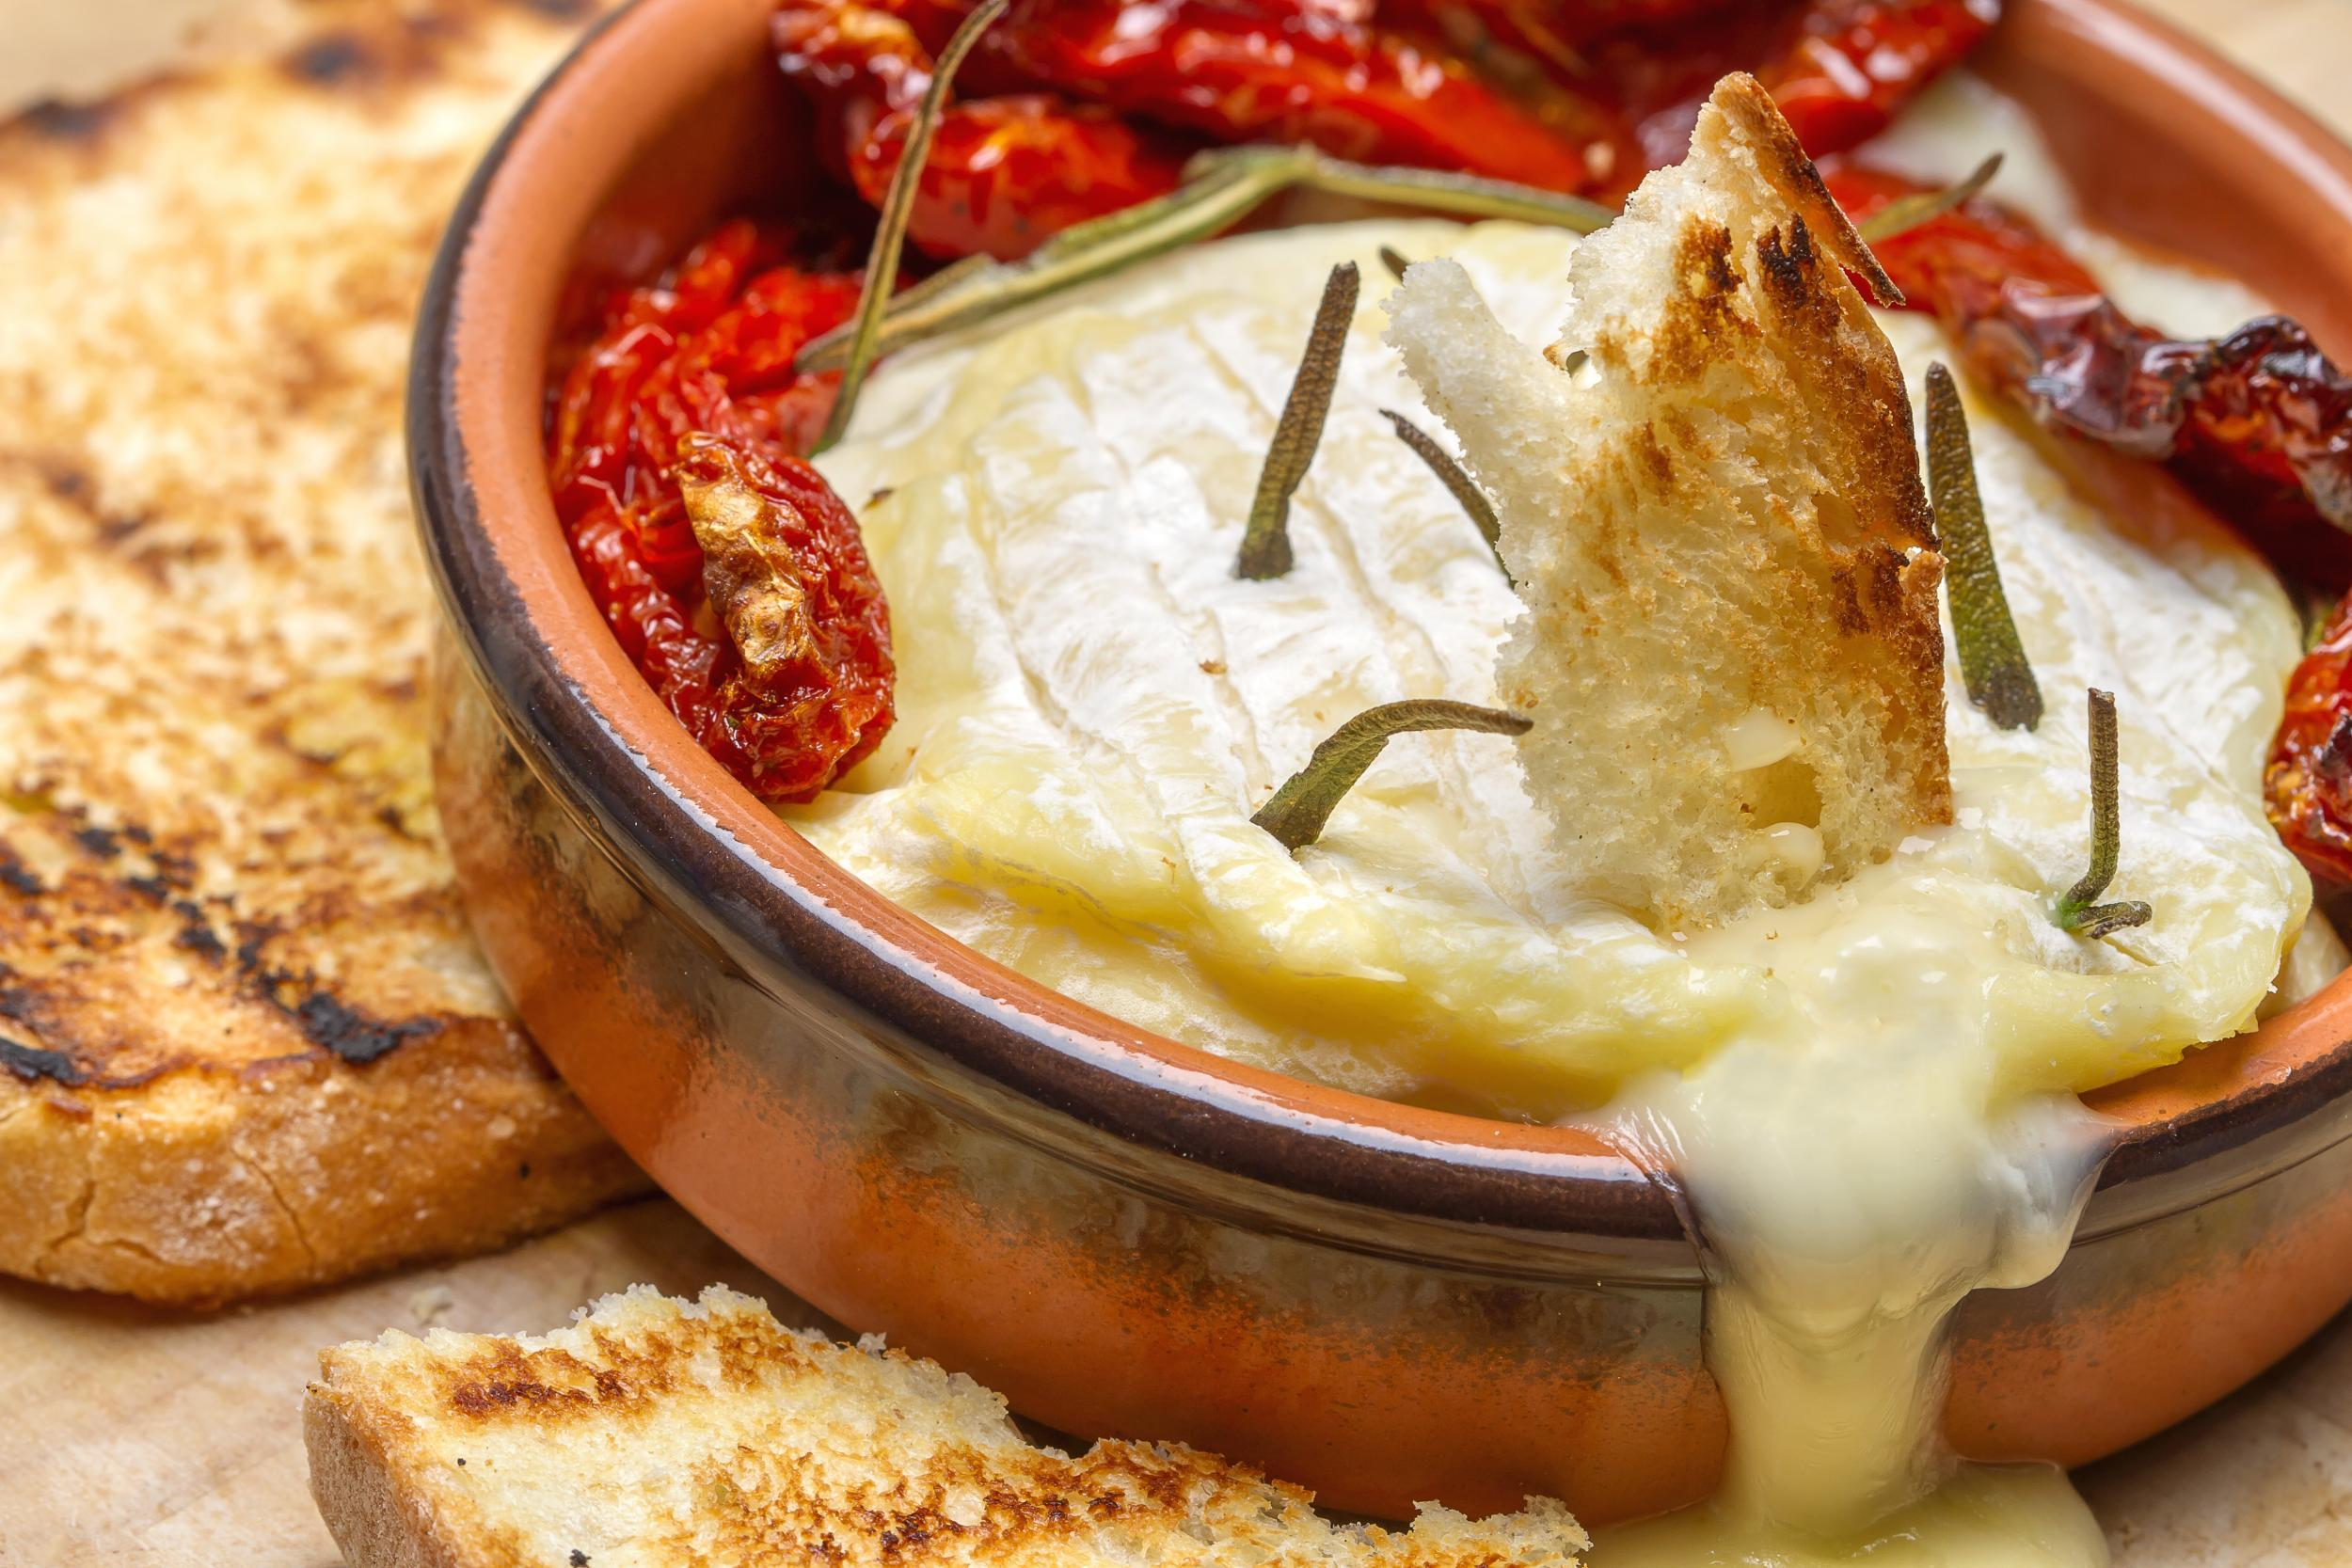 Eating 'aged Cheeses' Like Brie Could Help You To Live Longer photo